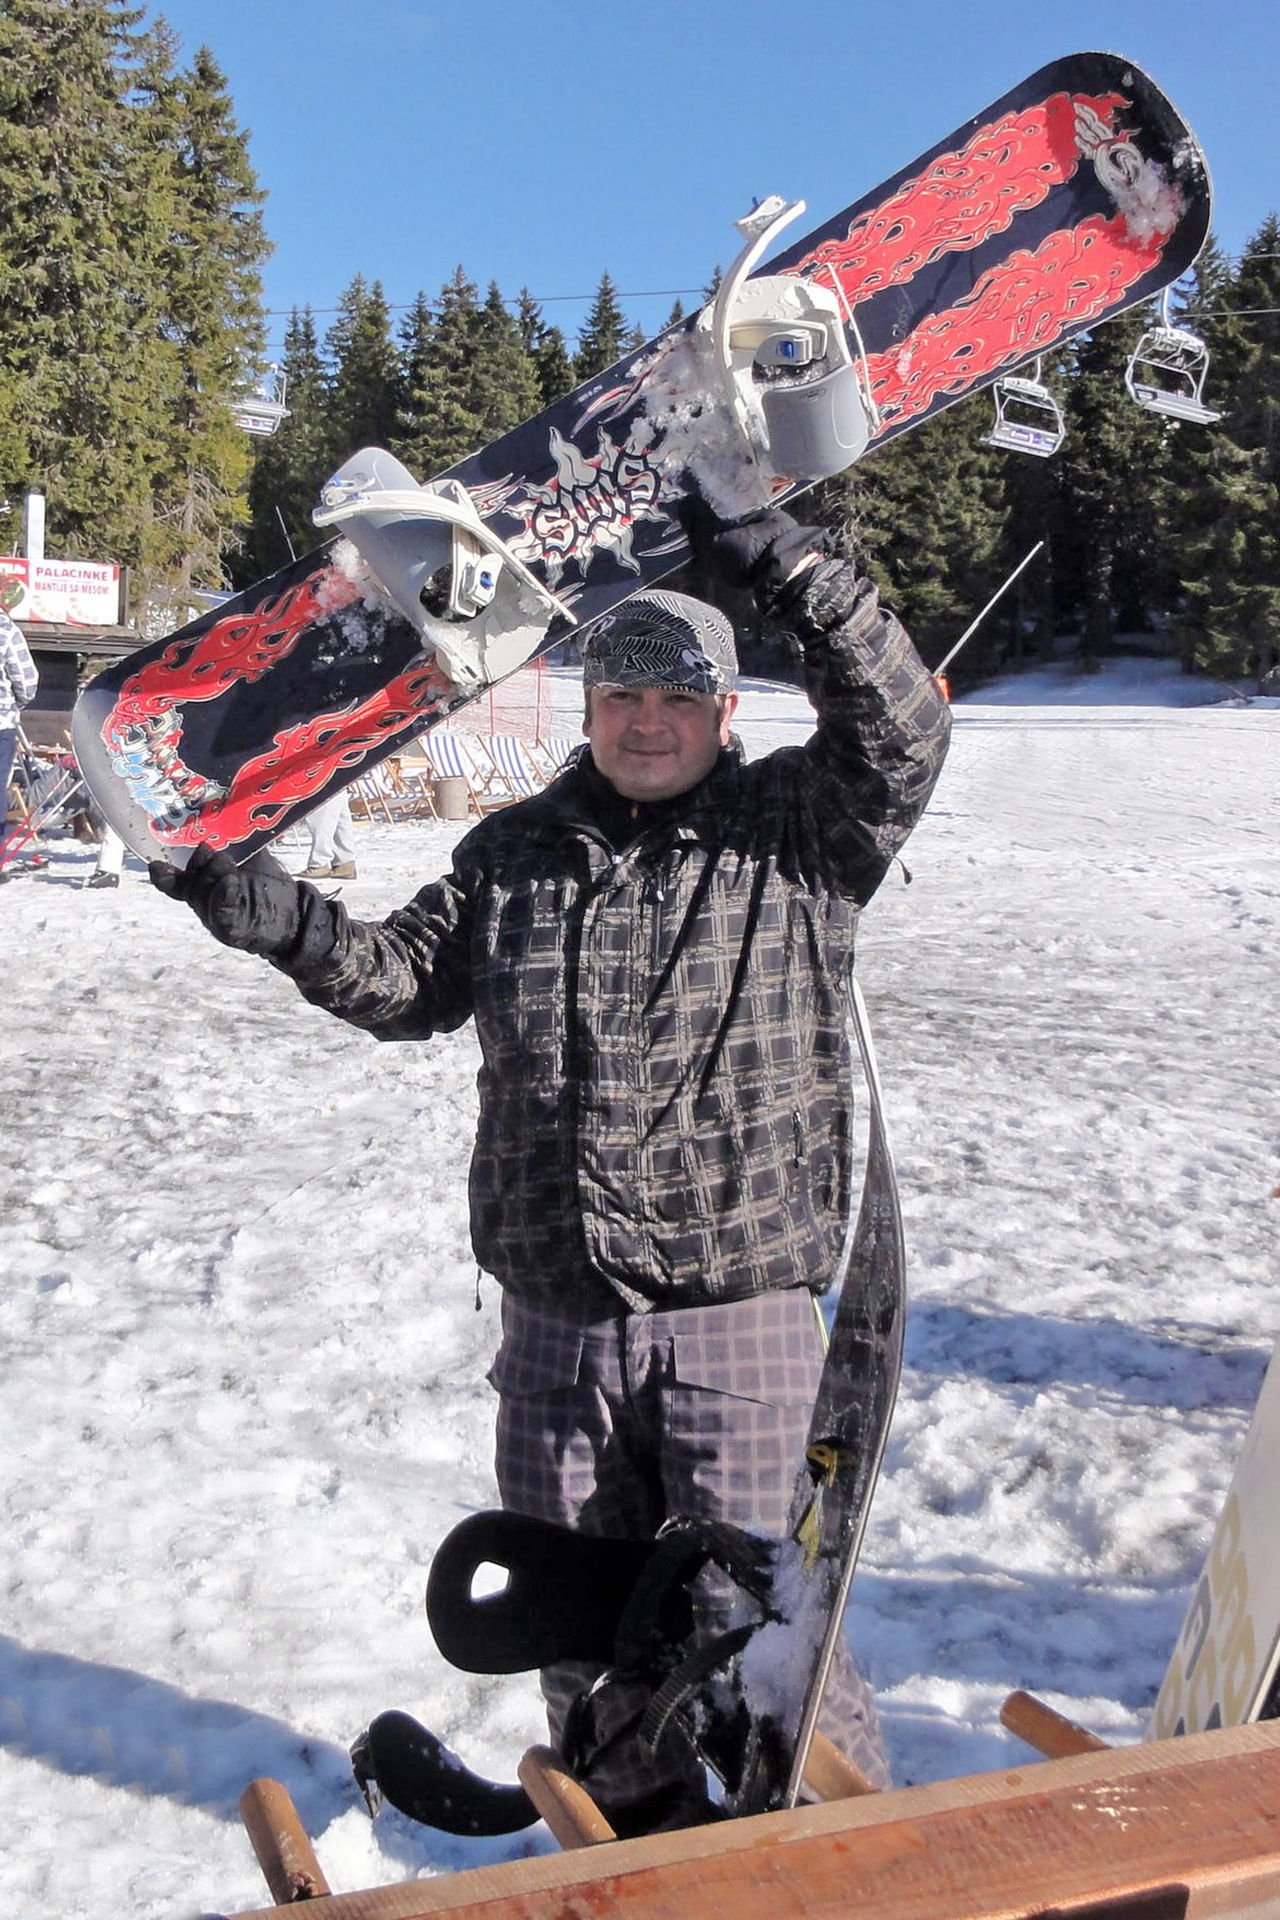 Snowboarding in beautyful day Adventure Cold Day Extreme Sports Looking At Camera One Person Outdoors Real People Ski Center Snow Snowboard Snowboarder Snowboarding Snowboarding Sport Warm Clothing Winter Winter Sport